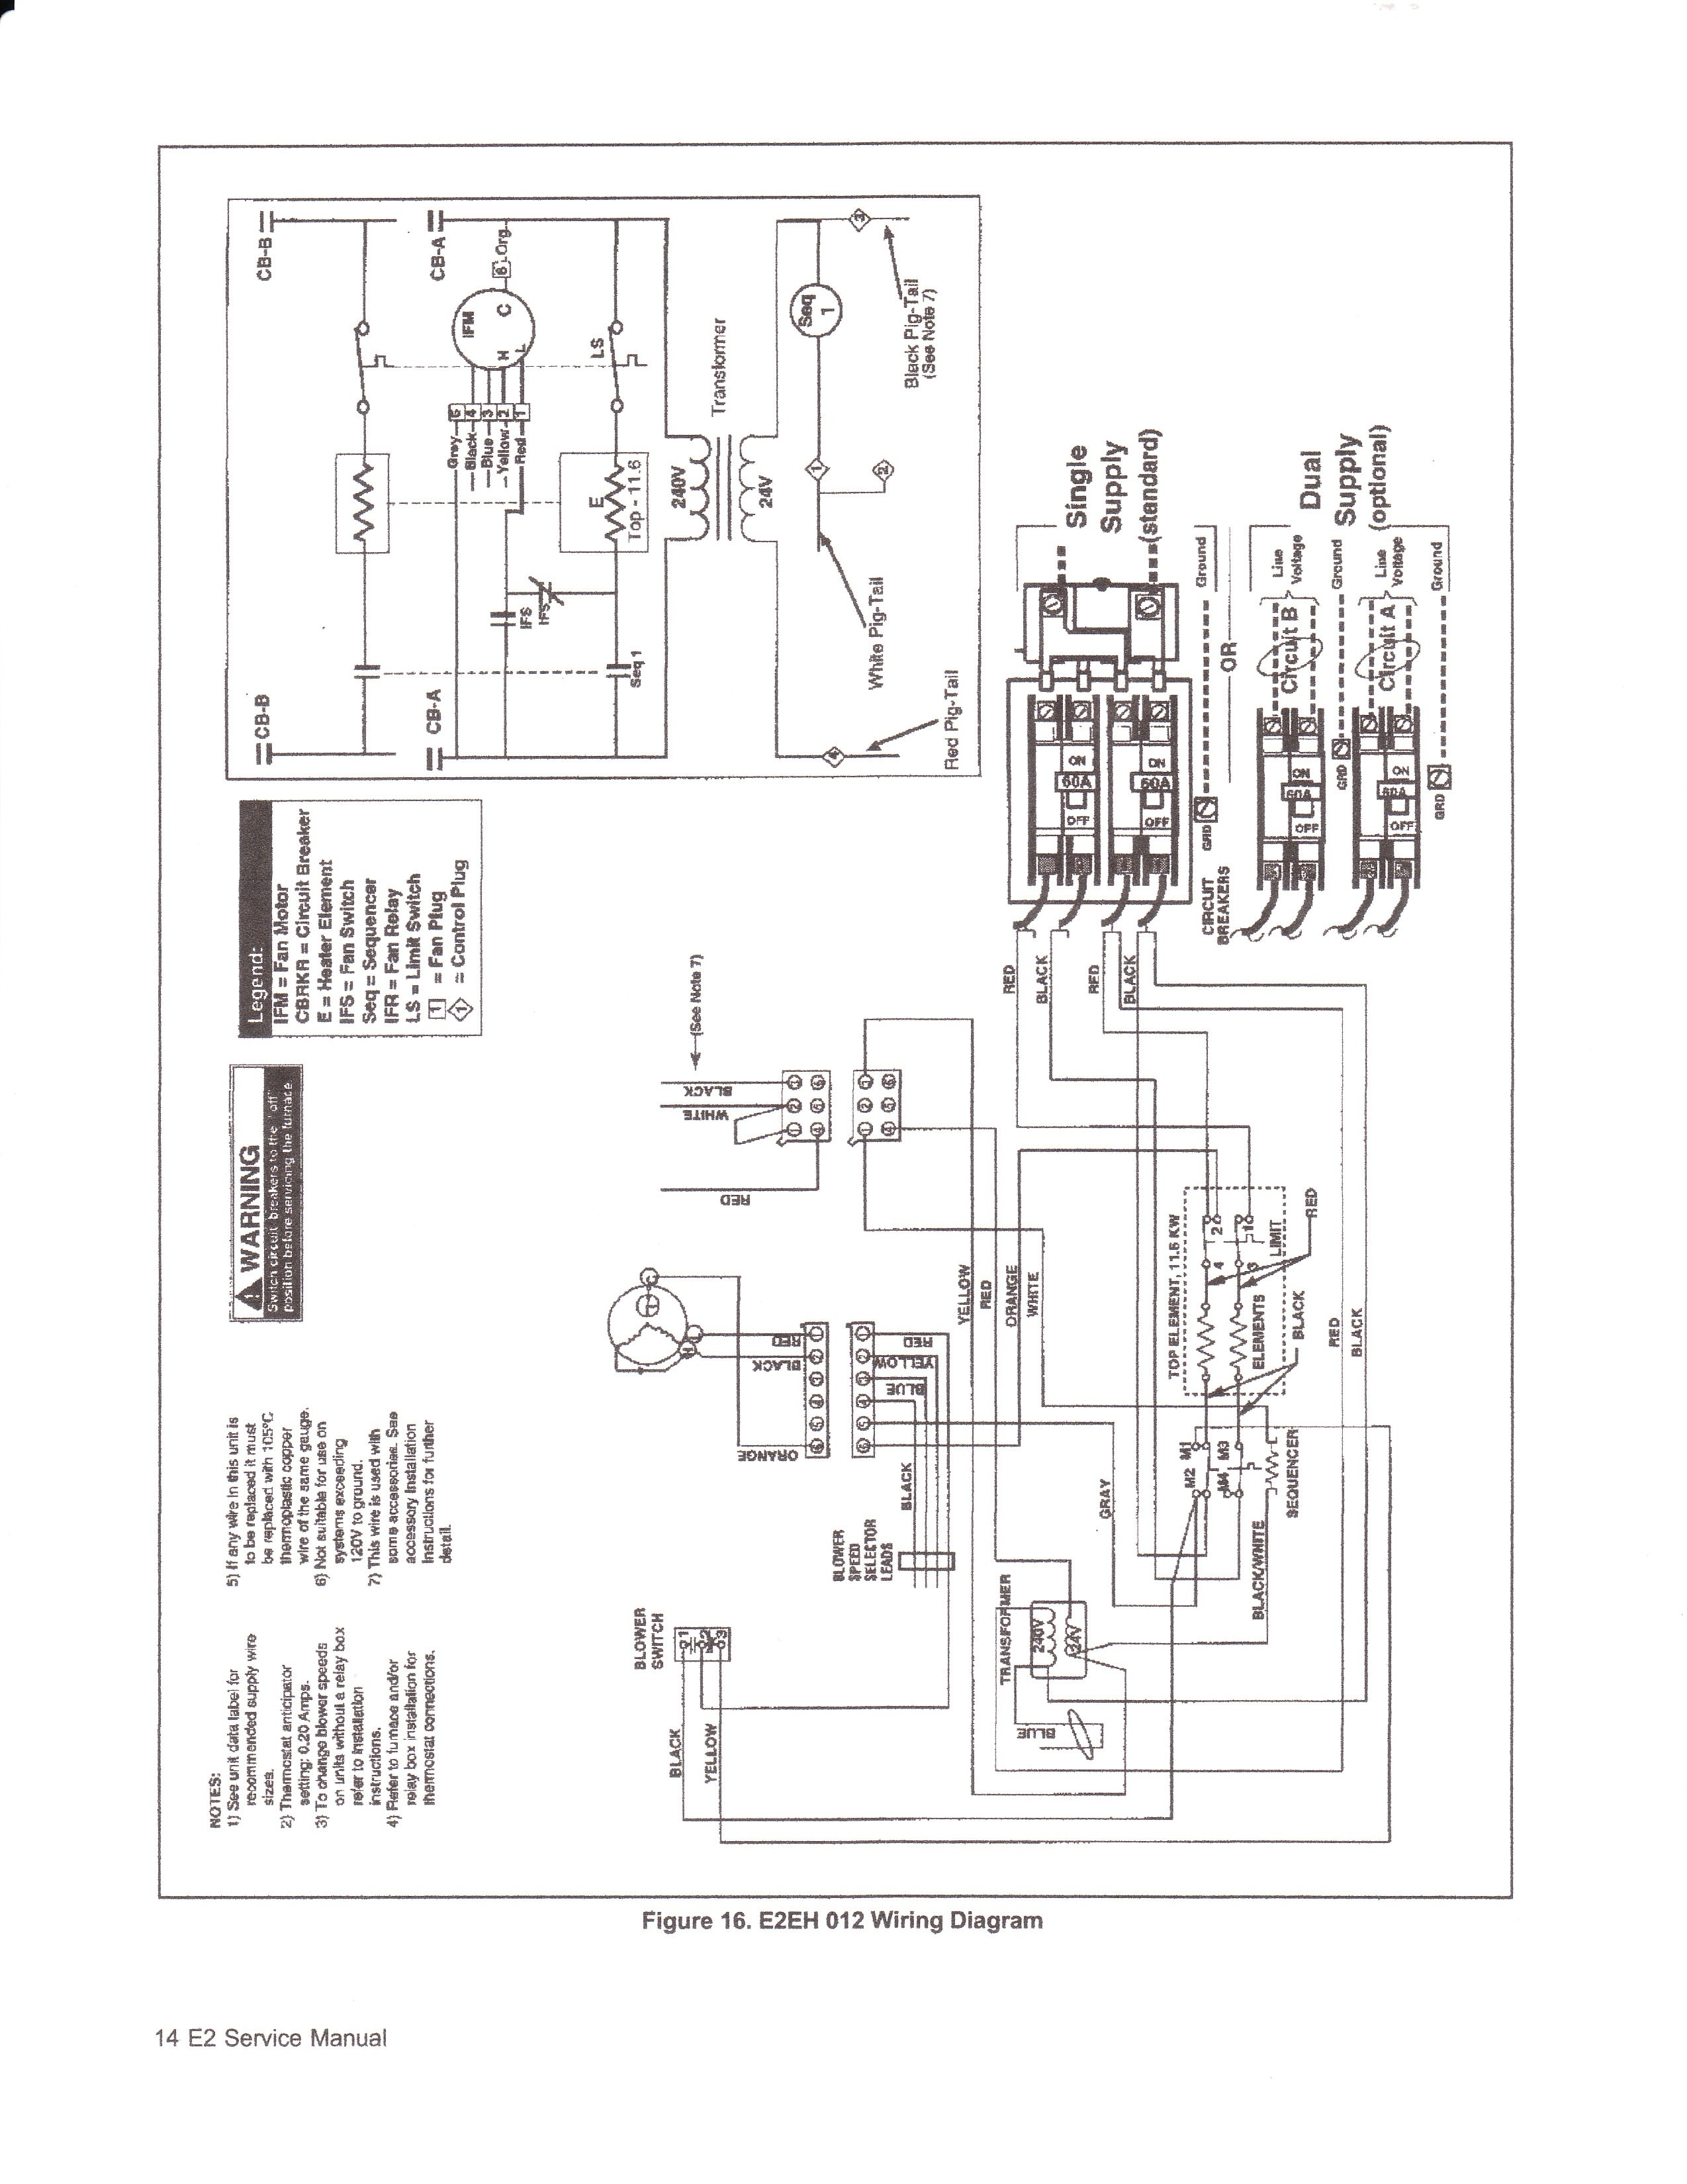 e2eb 012ha wiring diagram Download-Wiring Diagram Detail Name e2eb 012ha 20-m